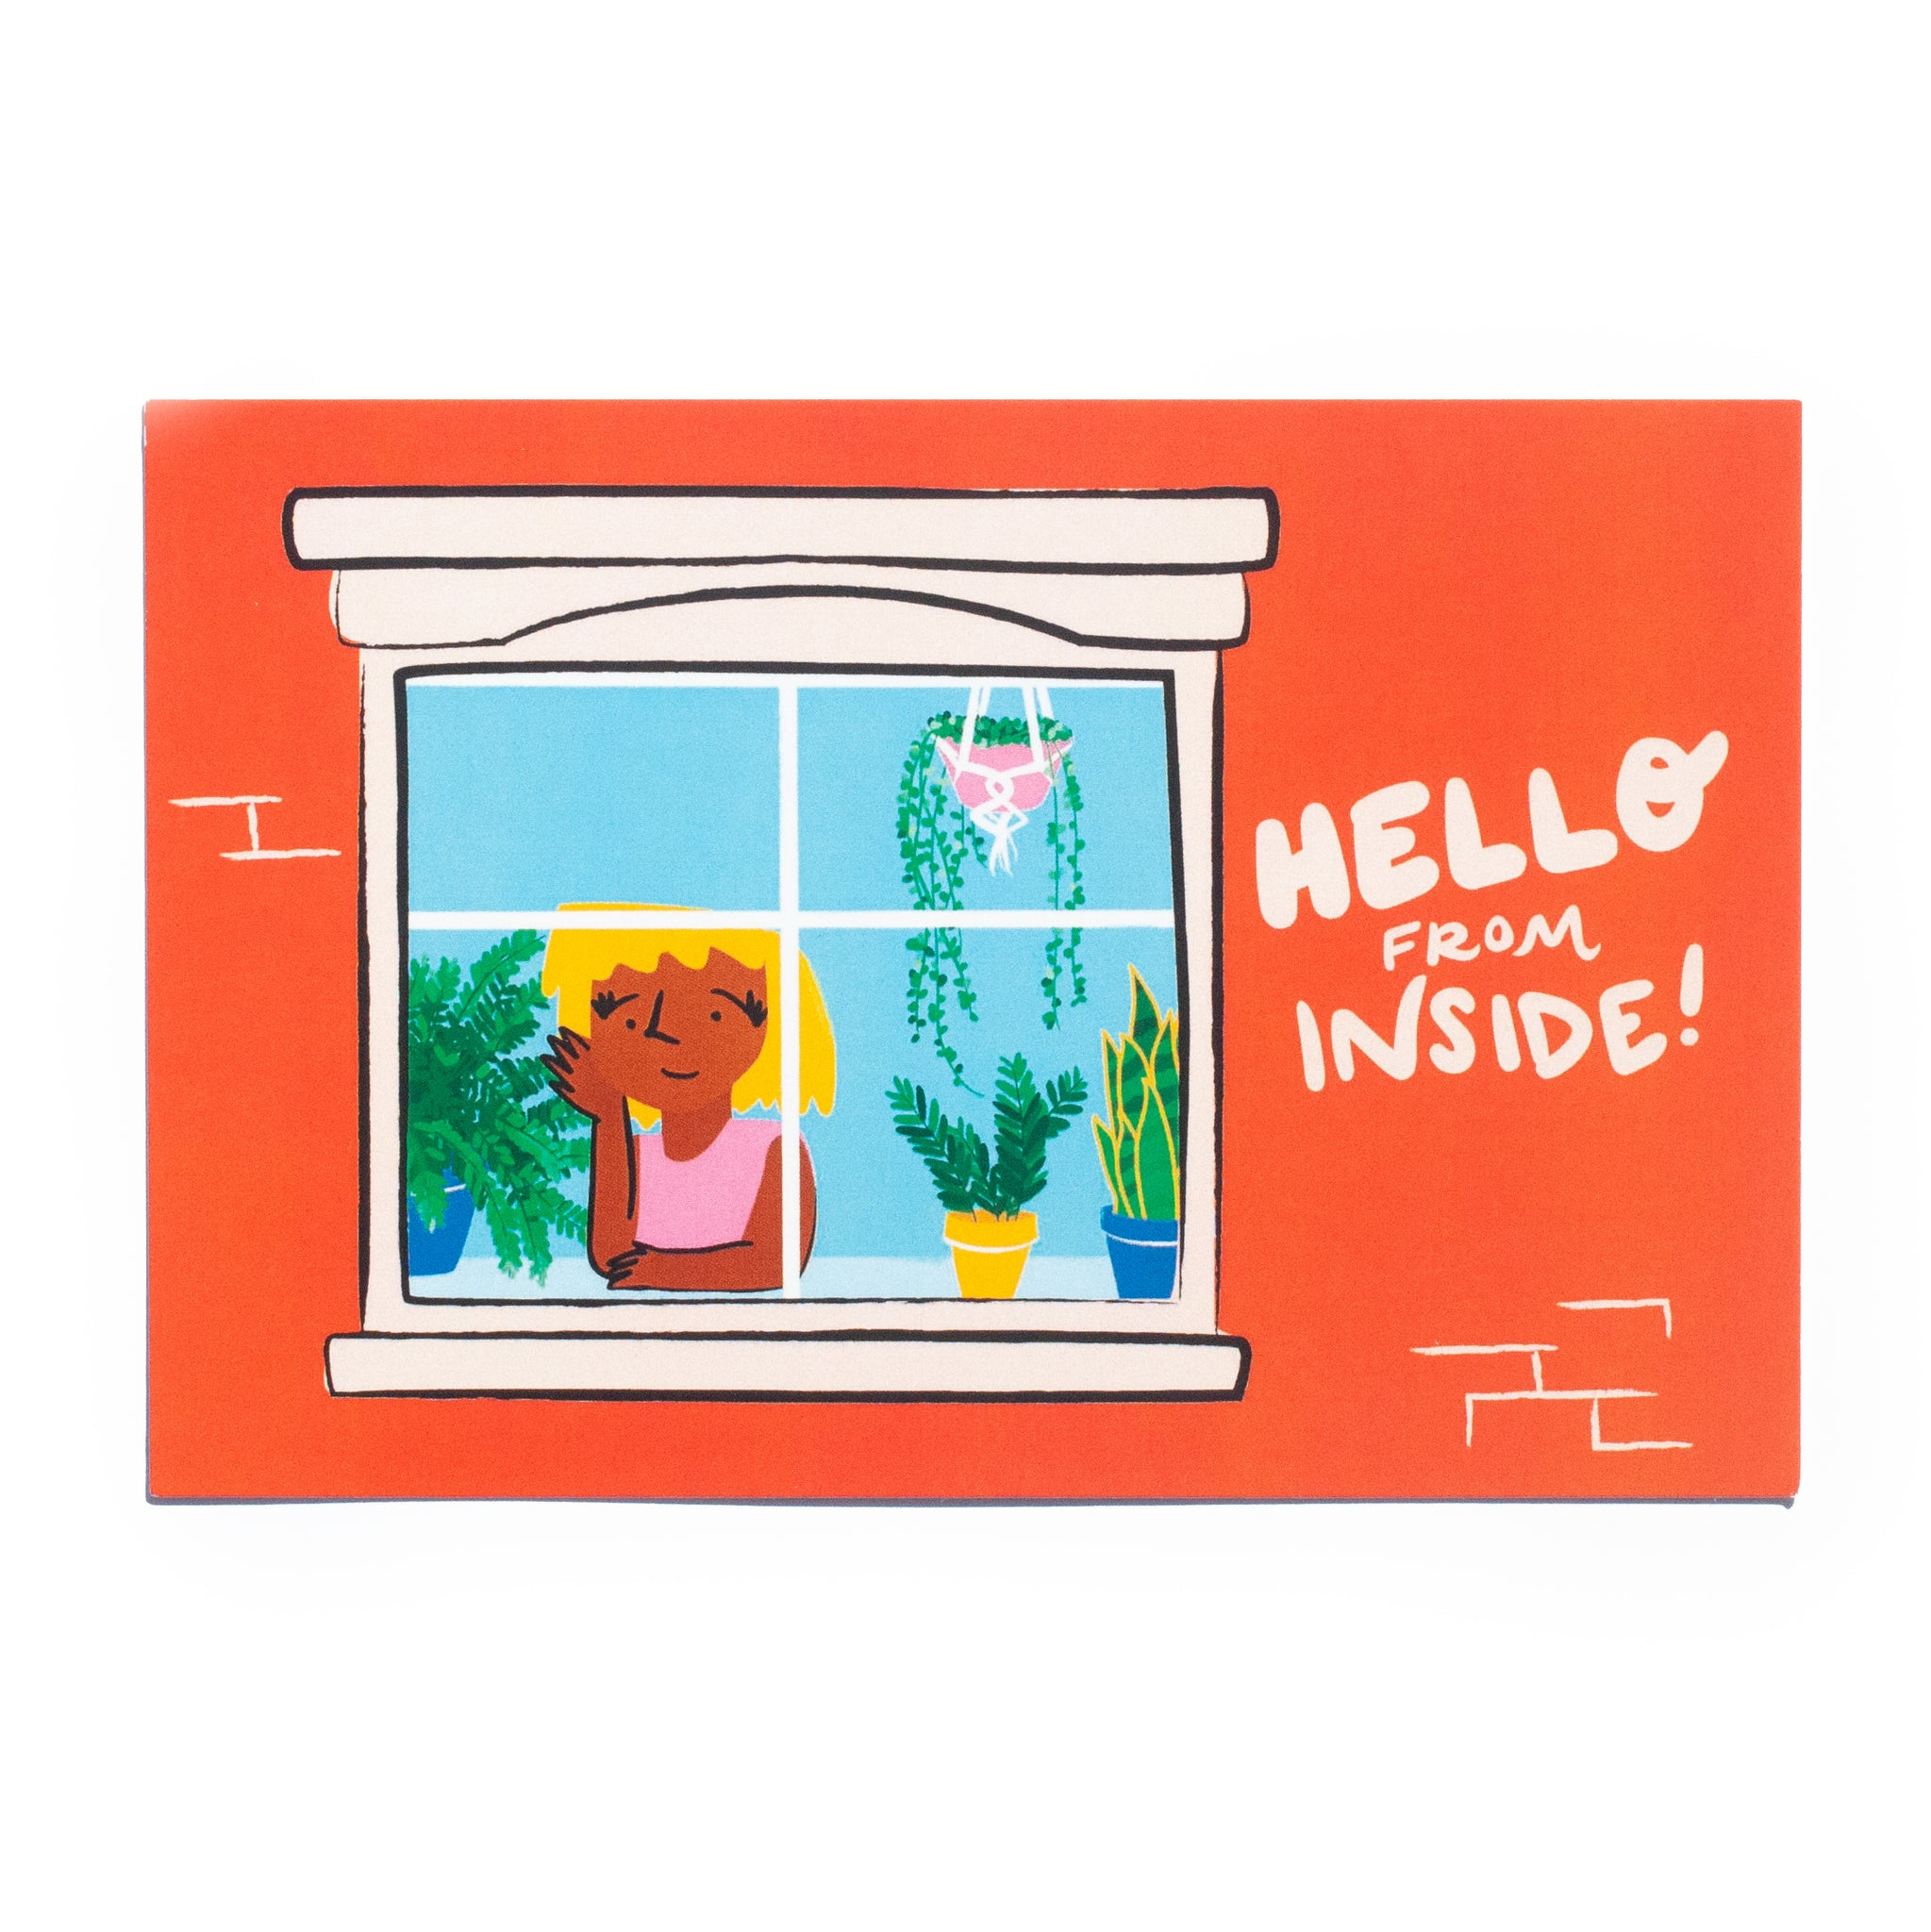 Hello from Inside! (window) • 5 postcard set